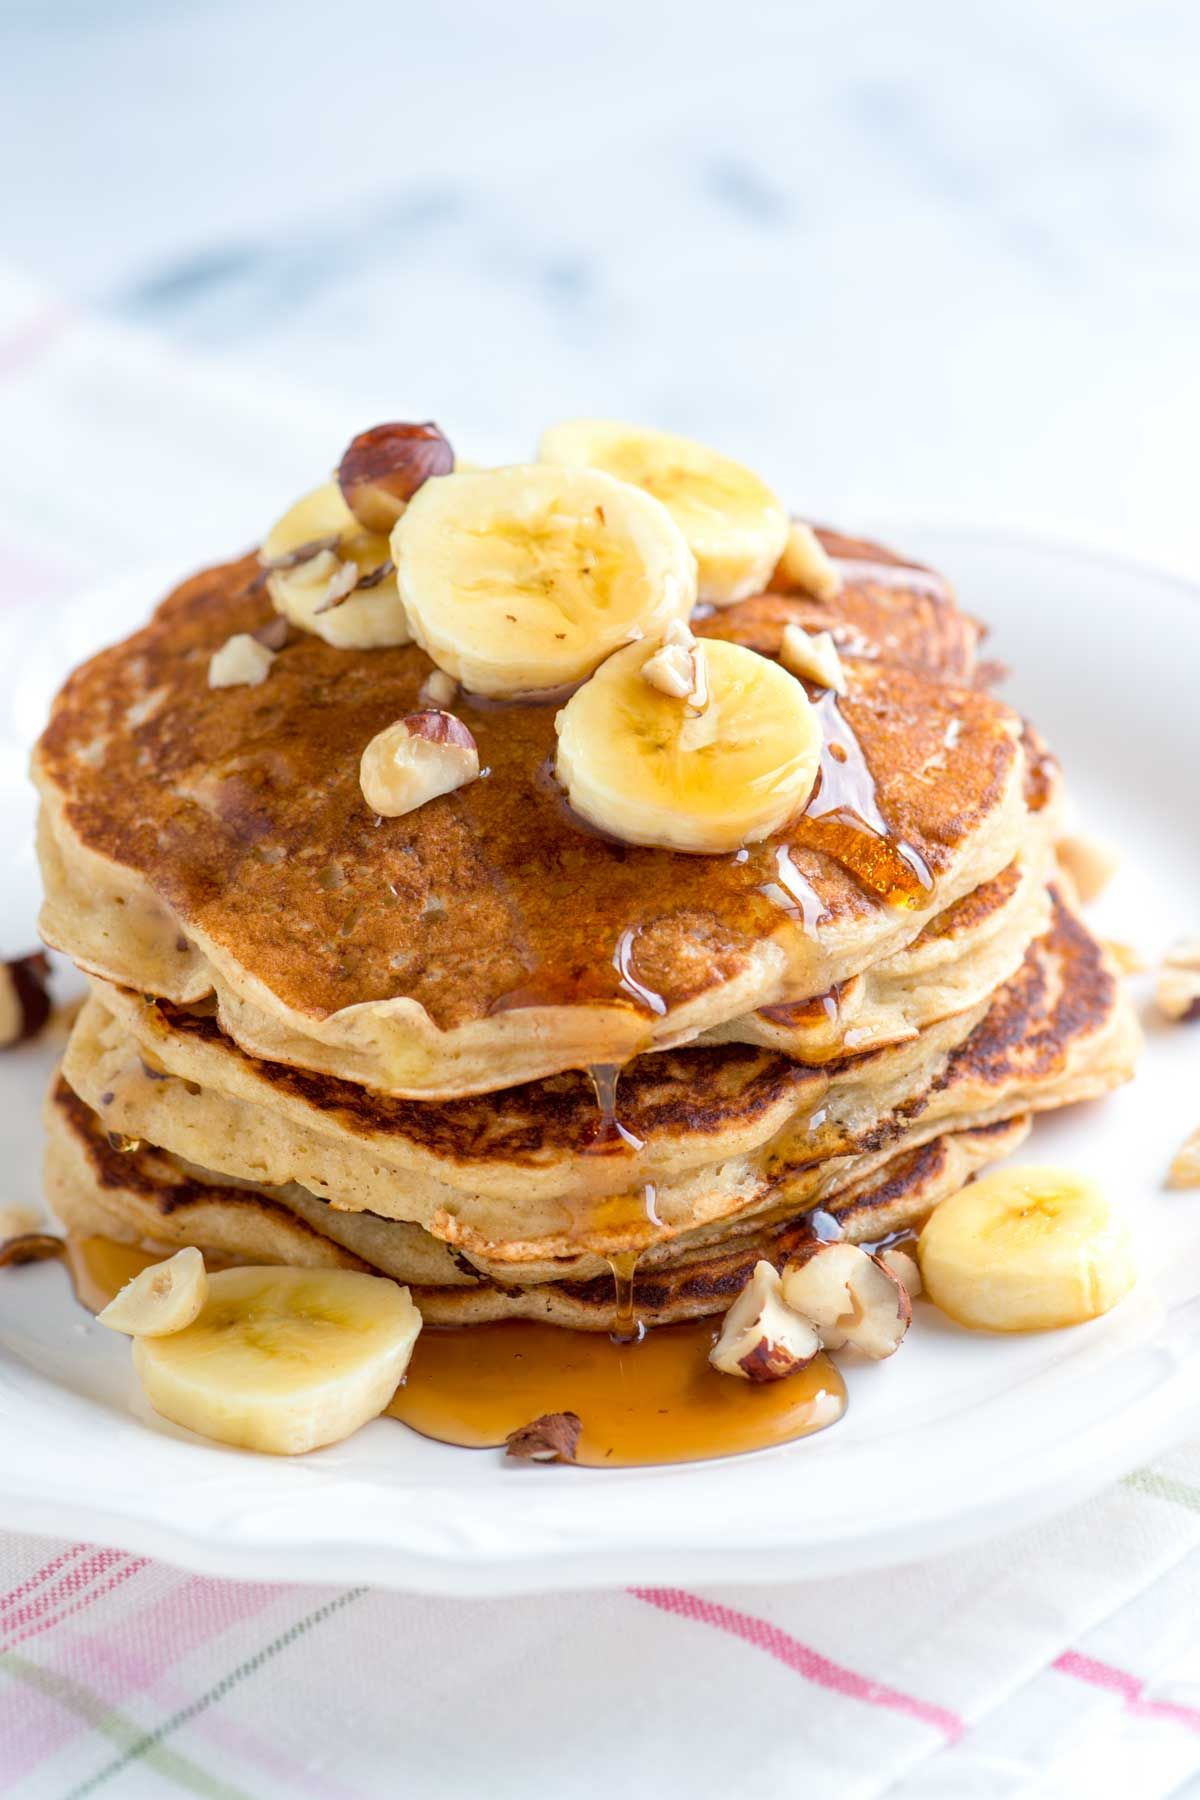 How To Make Spiced Buttermilk Banana Pancakes Banana Pancakes Recipe Pancake Recipe Buttermilk Banana Pancakes